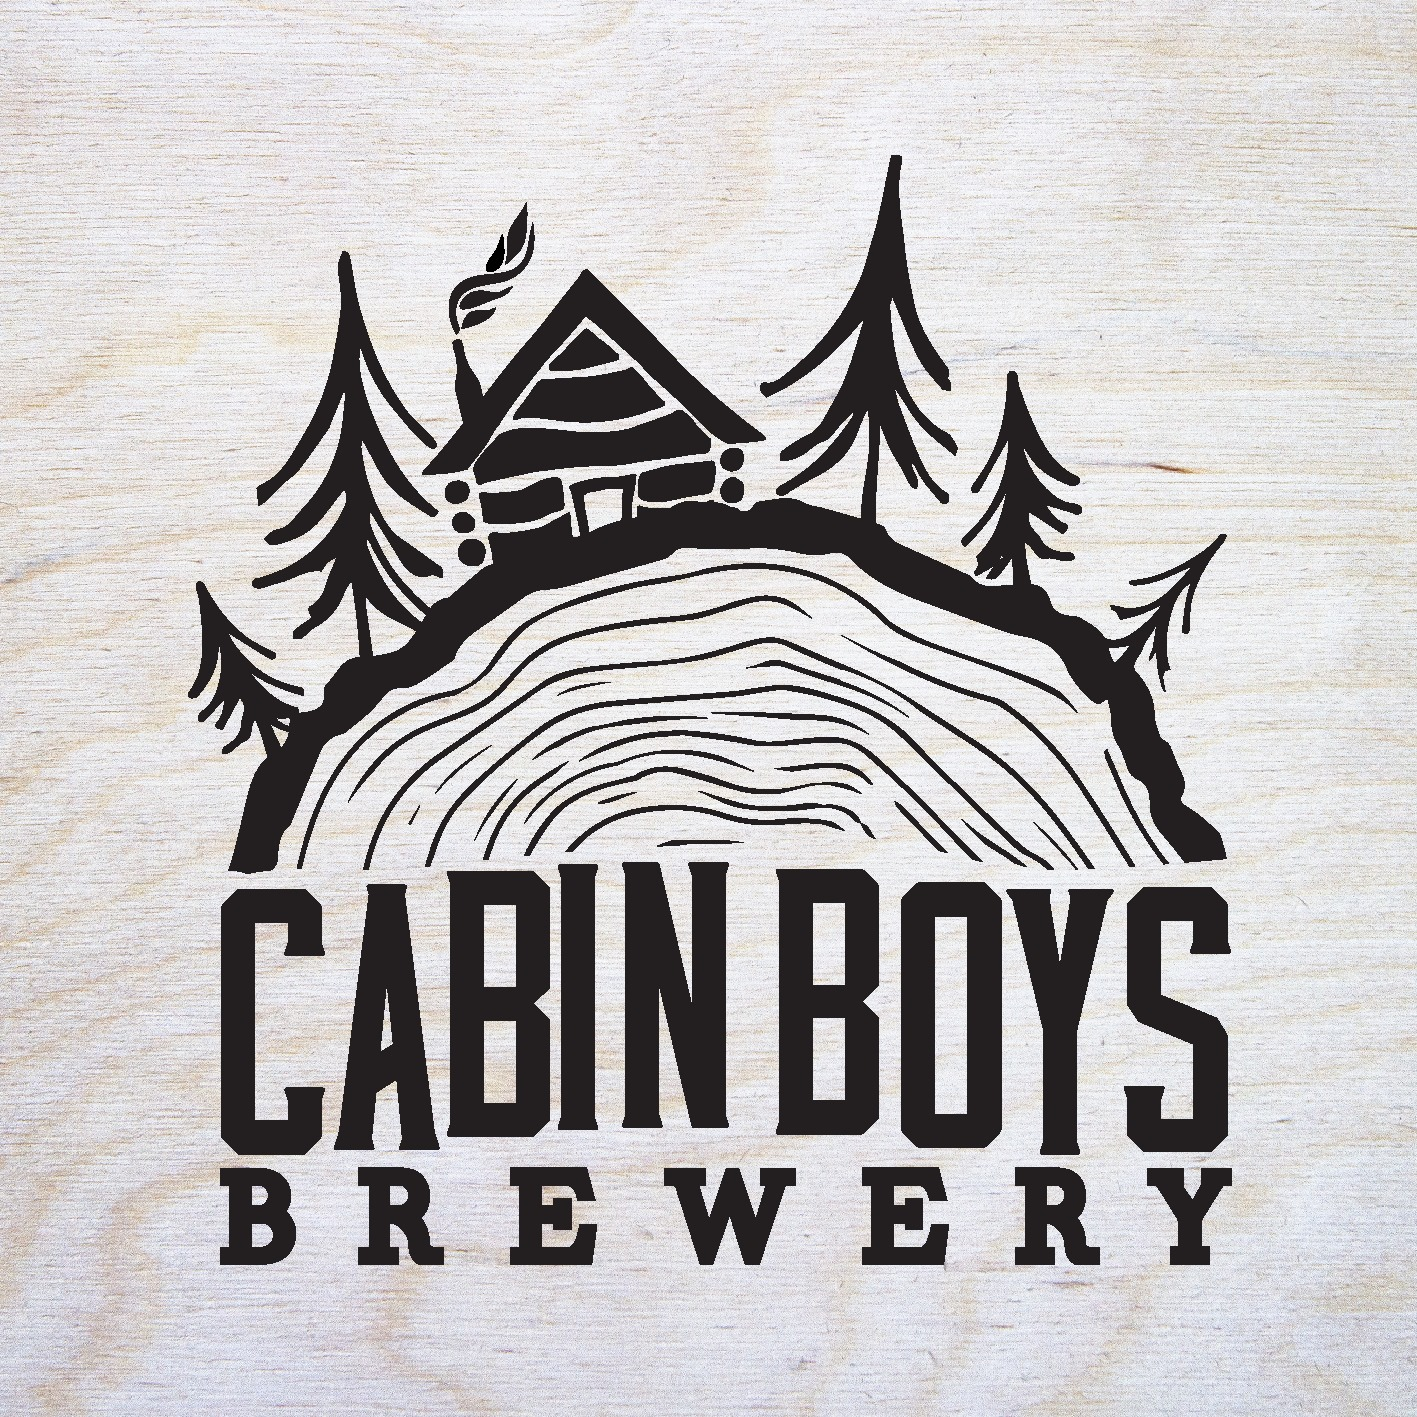 Cabin Boys Brewery - 1717 E. 7th St.Tulsa, OK 74104Taproom Hours:Sun 12-9 pmMon CLOSEDTues 4-9 pmWed 4-9 pmThur 4pm - 12 amFri 11 am-12 amSat 11 am-12 am